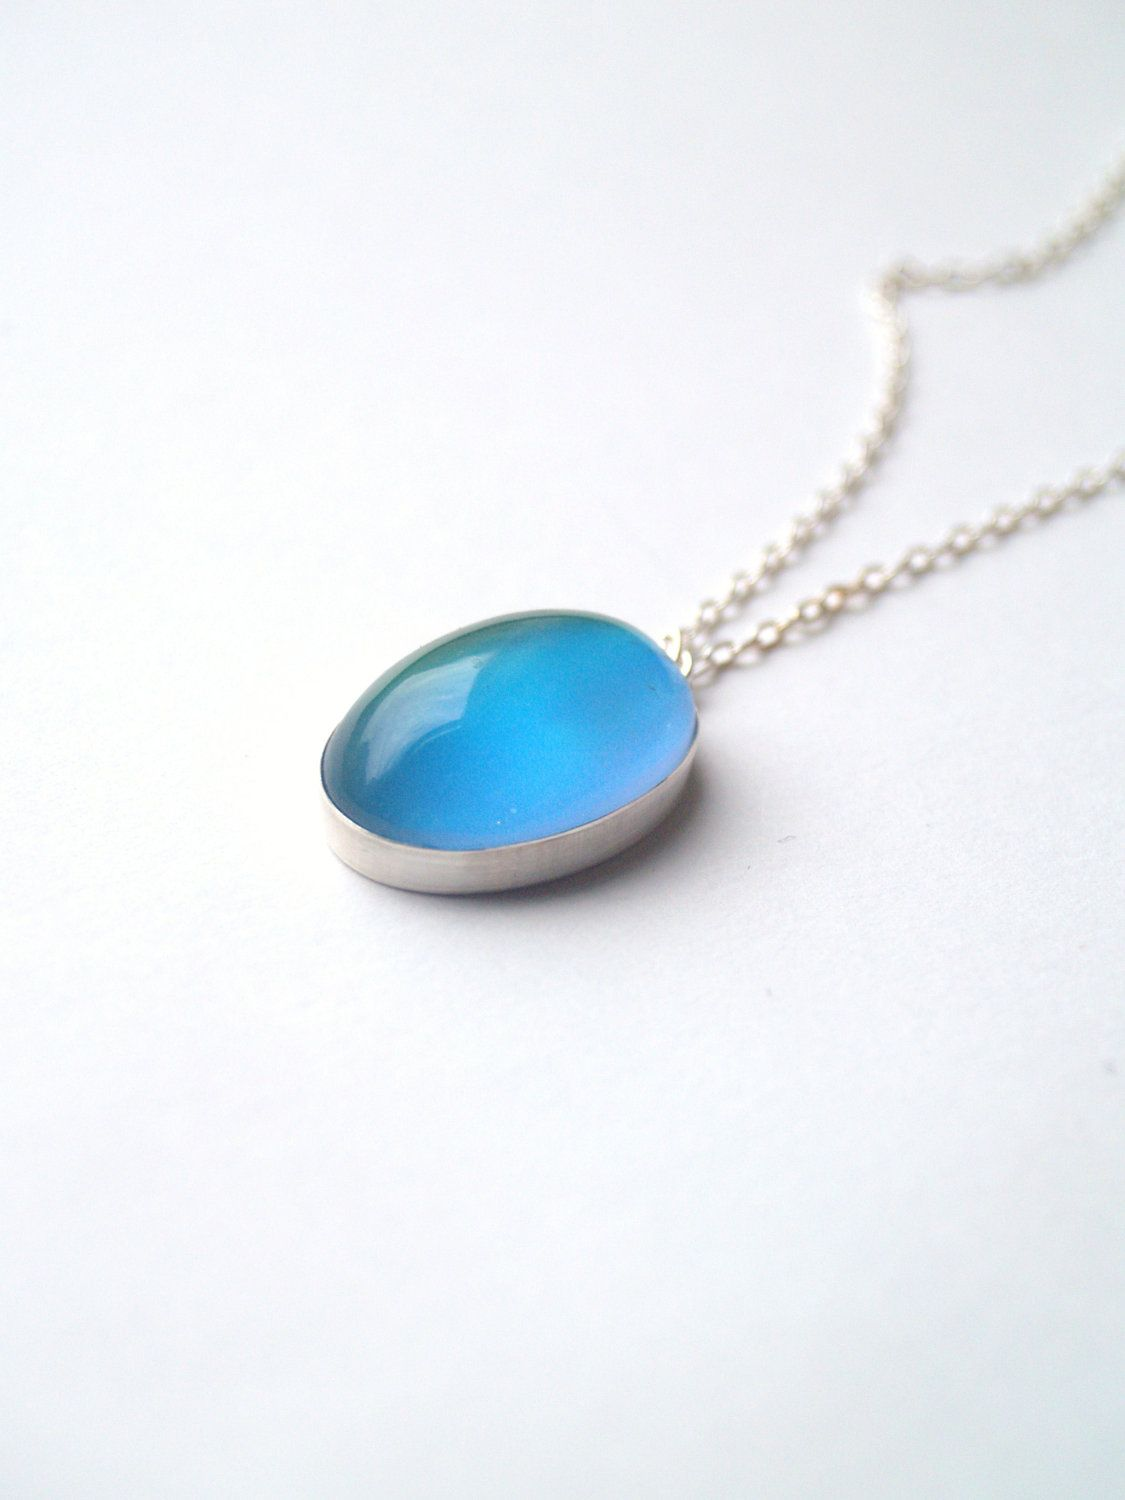 Mood necklace large sterling silver with color changing stone mood necklace geenschuldenfo Image collections